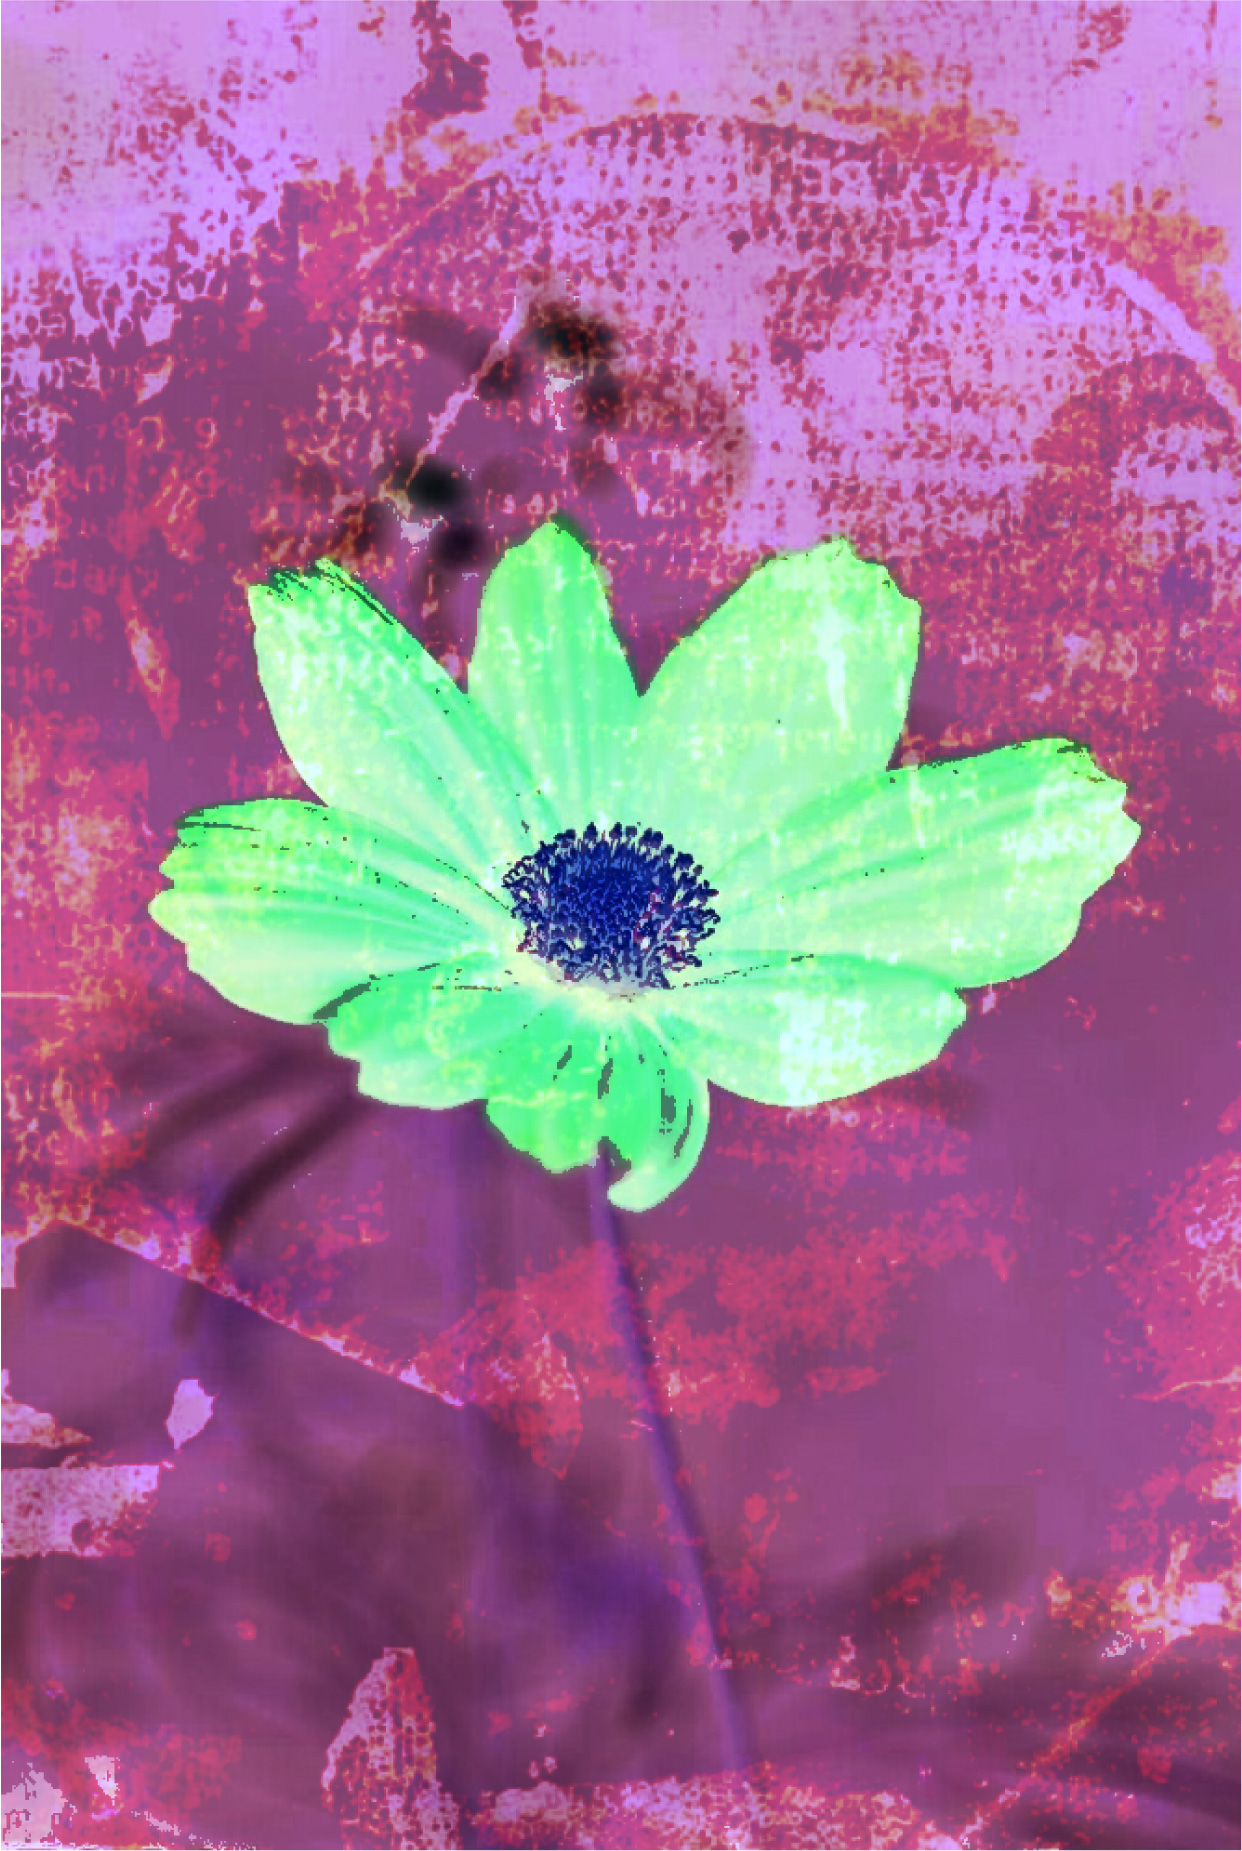 Flower 2918 digital photograph art by Ron Labryzz